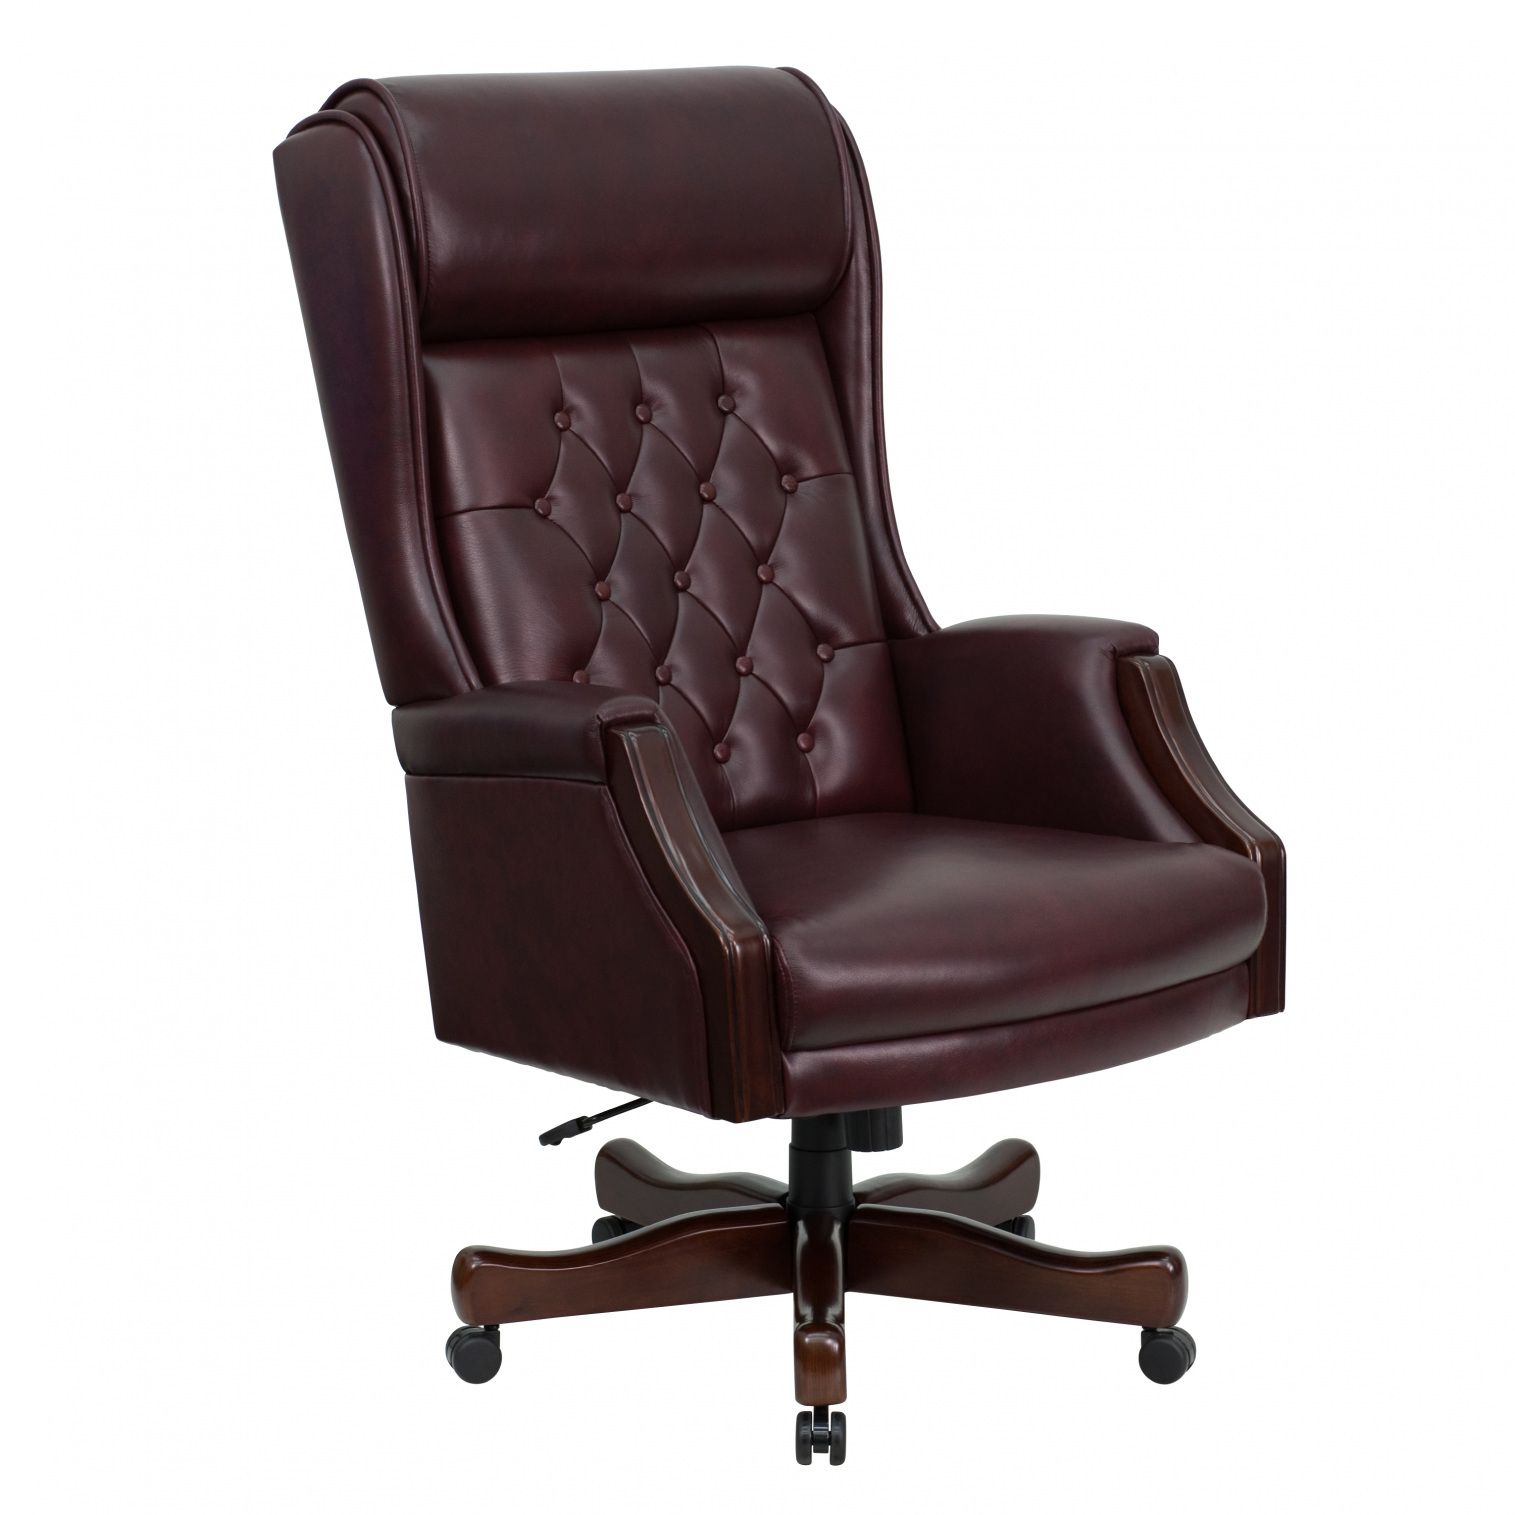 Dark Brown Leather Office Chair Home Furniture Collections Check More At Http